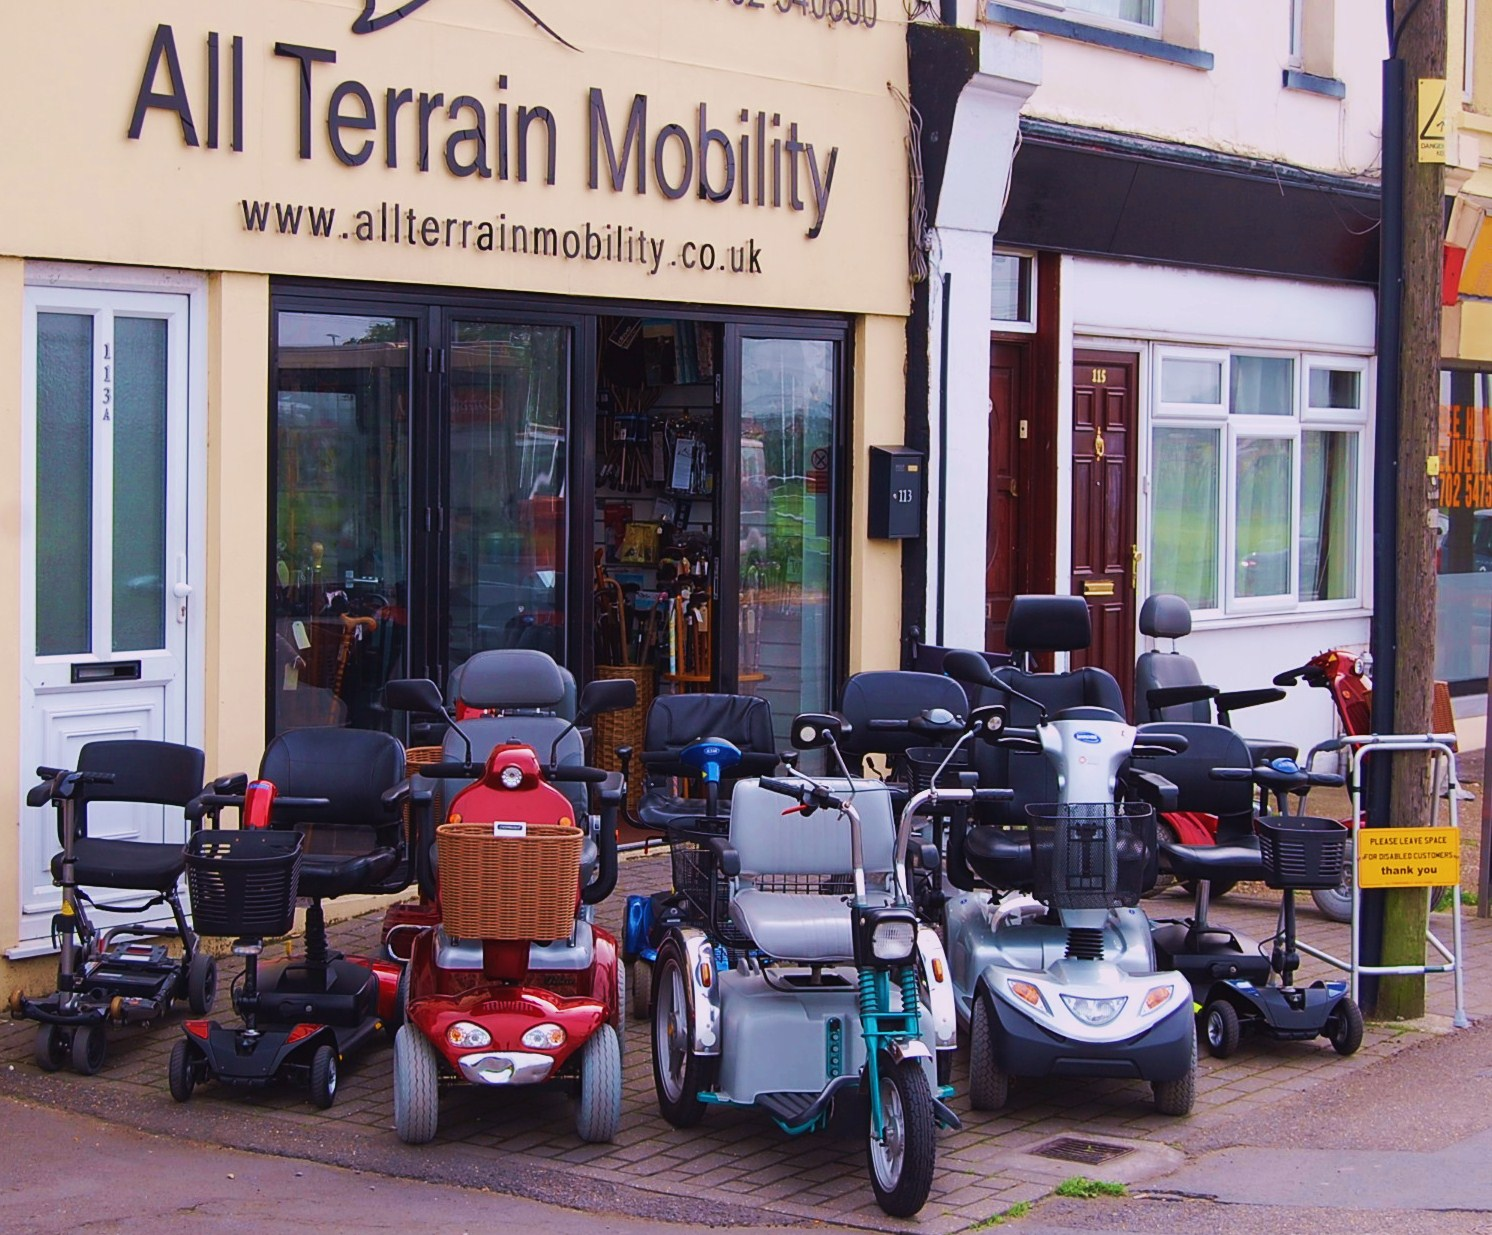 Some of our fabulous pre-loved mobility scooters on display outside the front of our shop.